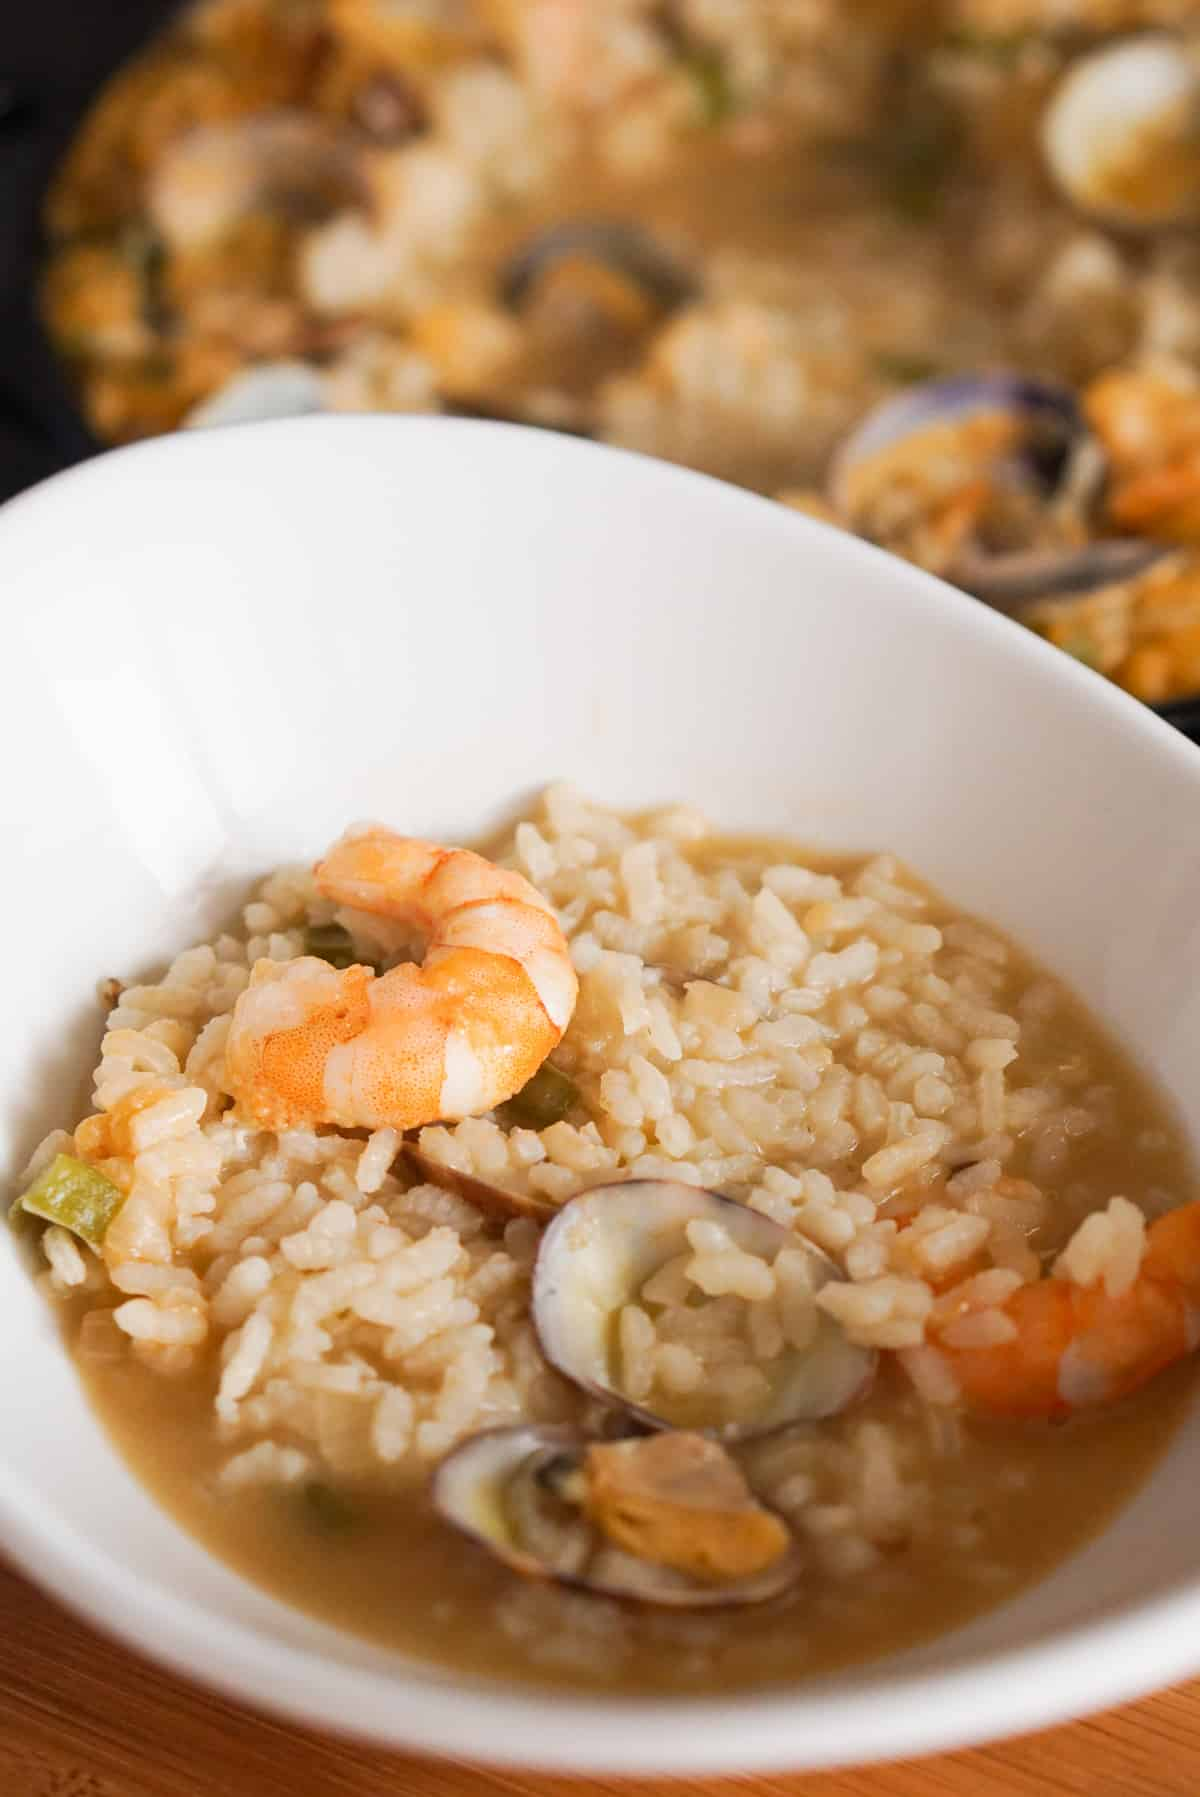 Spanish seafood rice in a white bowl.